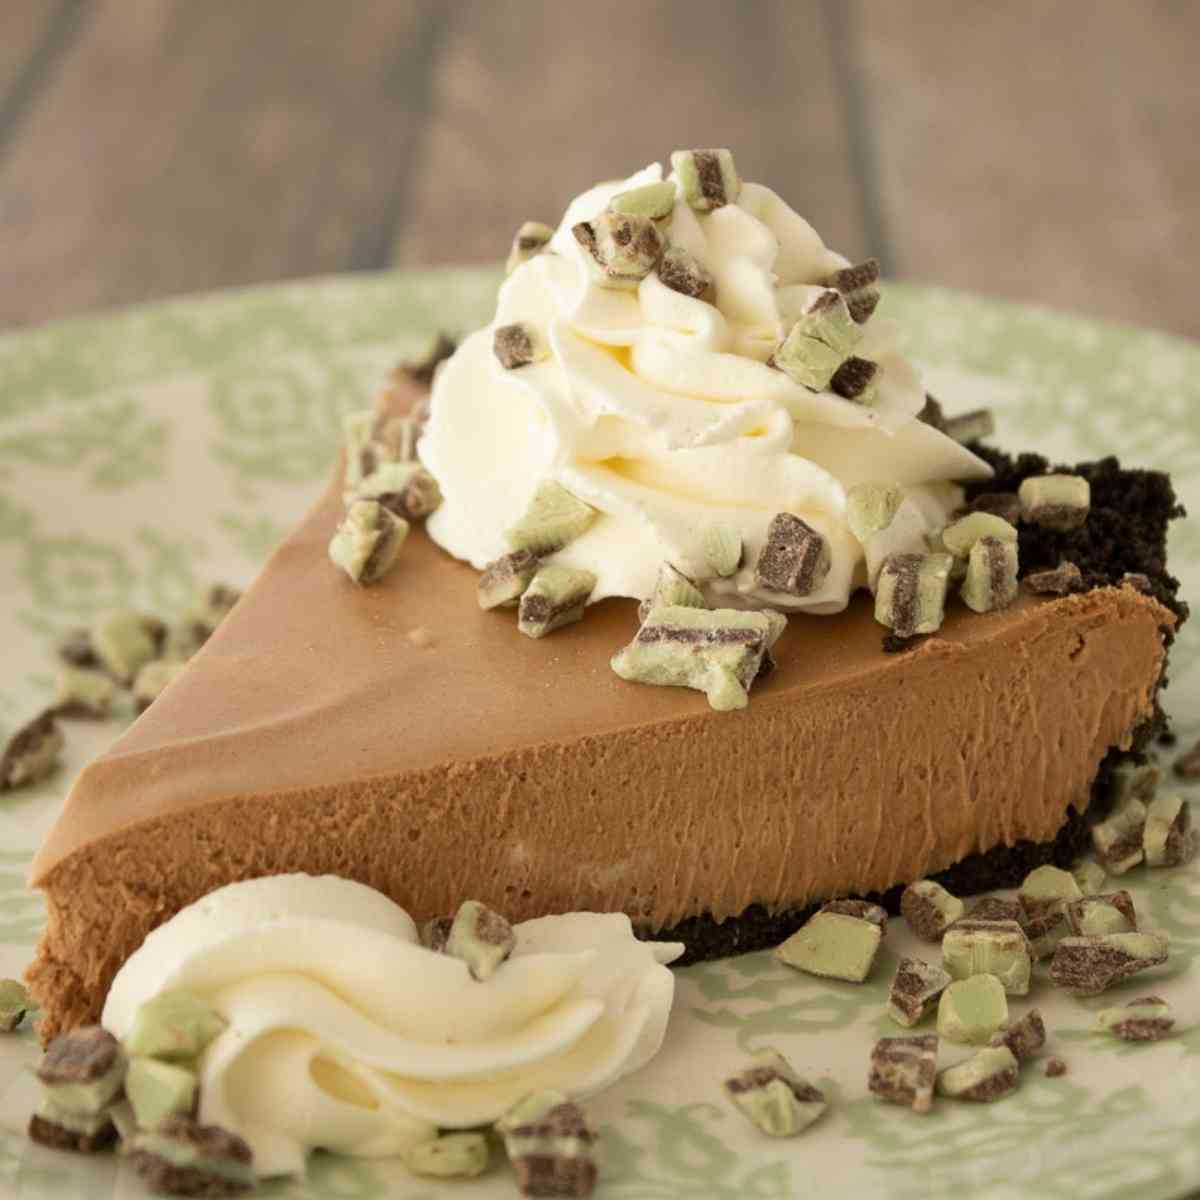 Slice of grasshopper pie garnished with whipped cream.